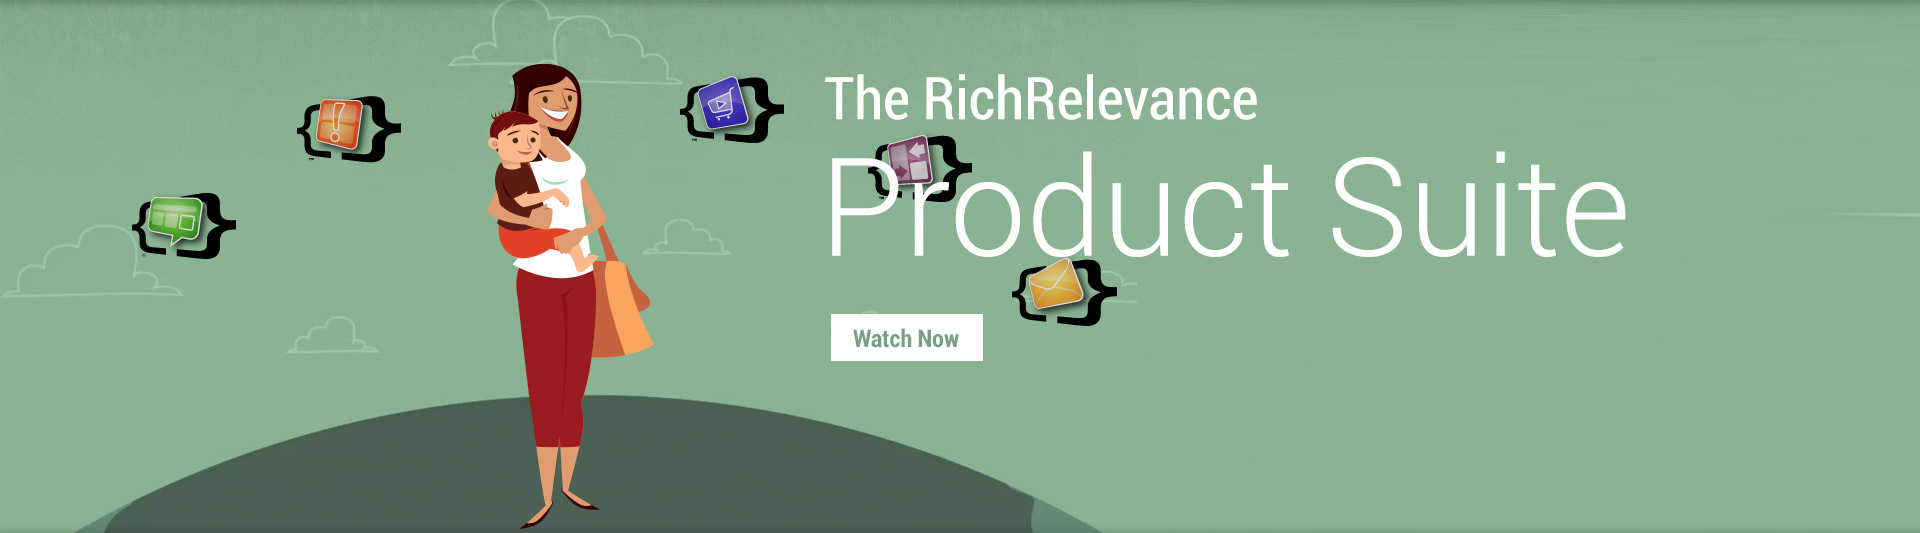 Watch the RichRelevance Product Suite Overview